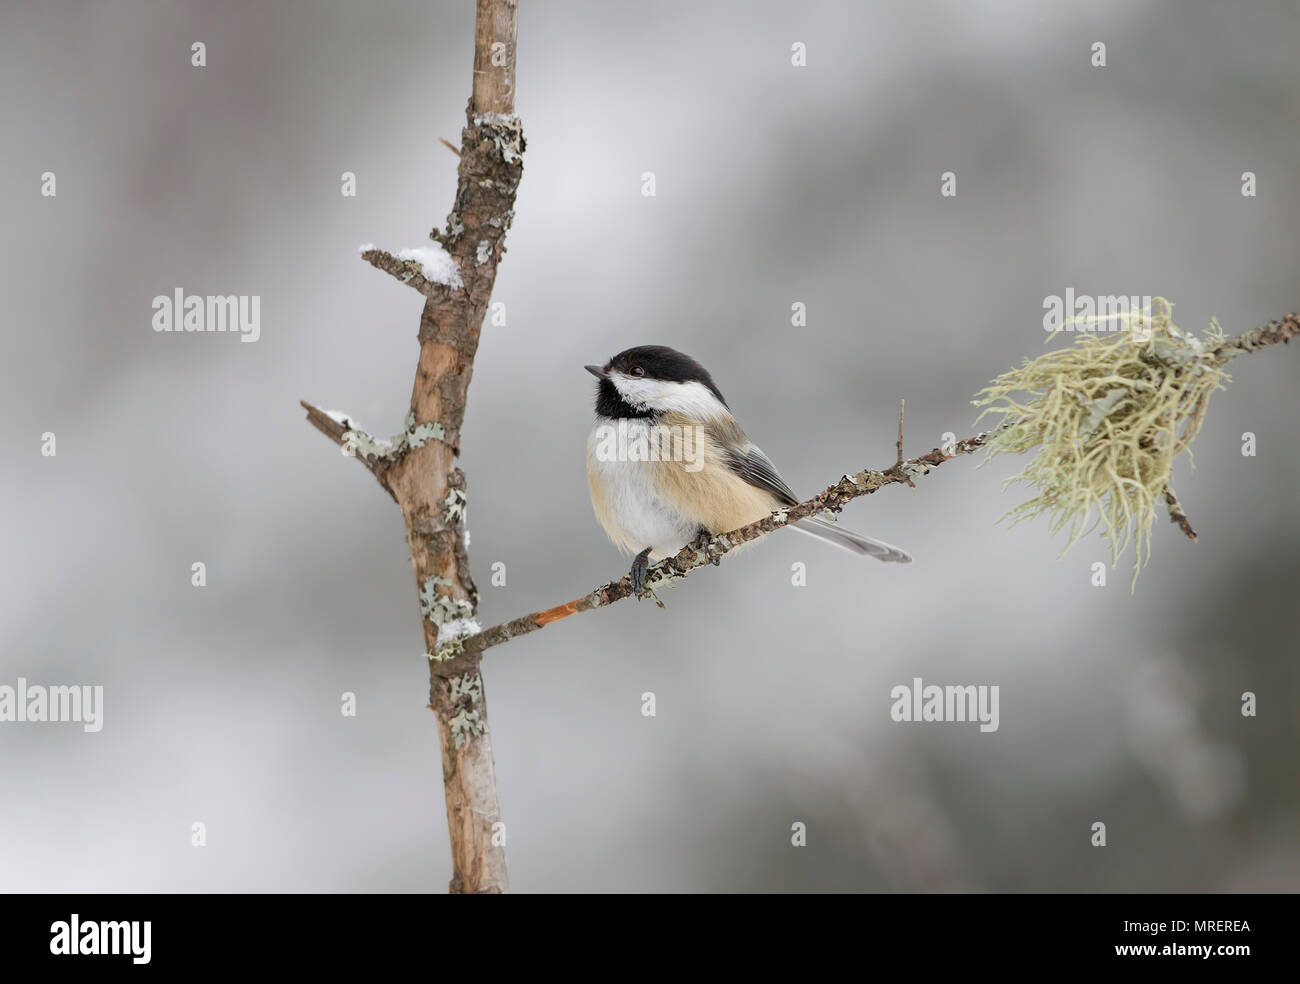 Black-capped Chickadee perched on branch in winter in Algonquin Park in Canada Stock Photo